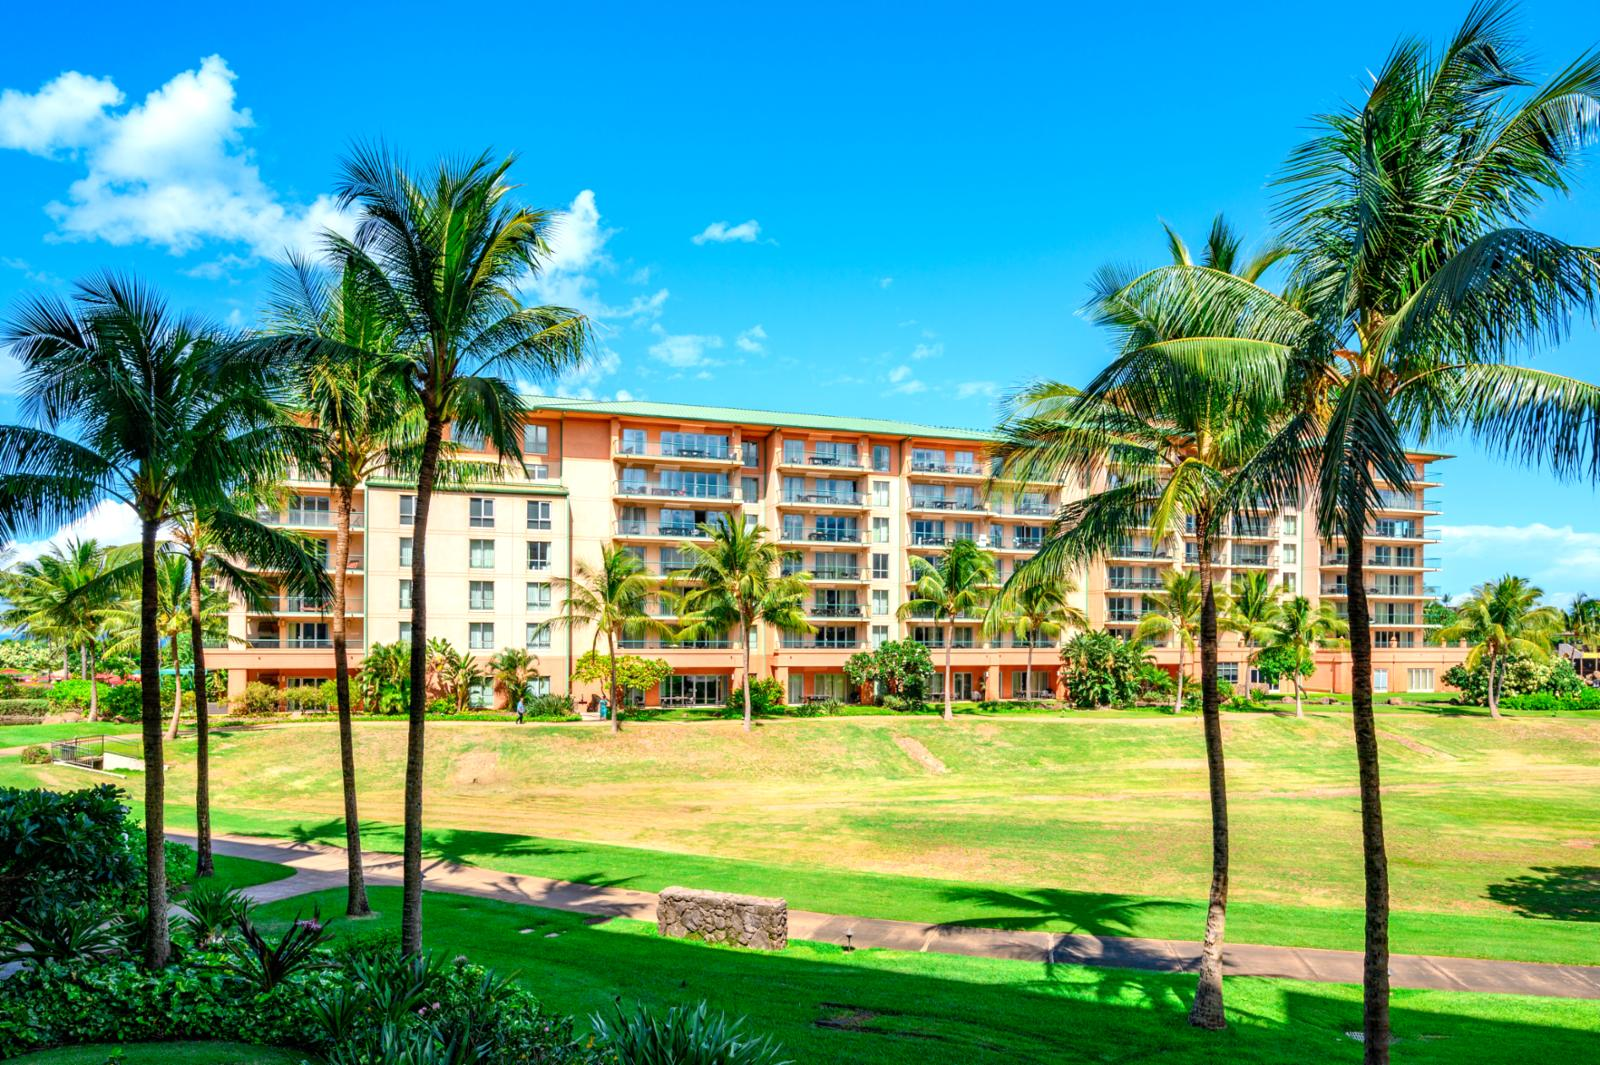 Enjoy the swaying palm trees and beautiful grounds